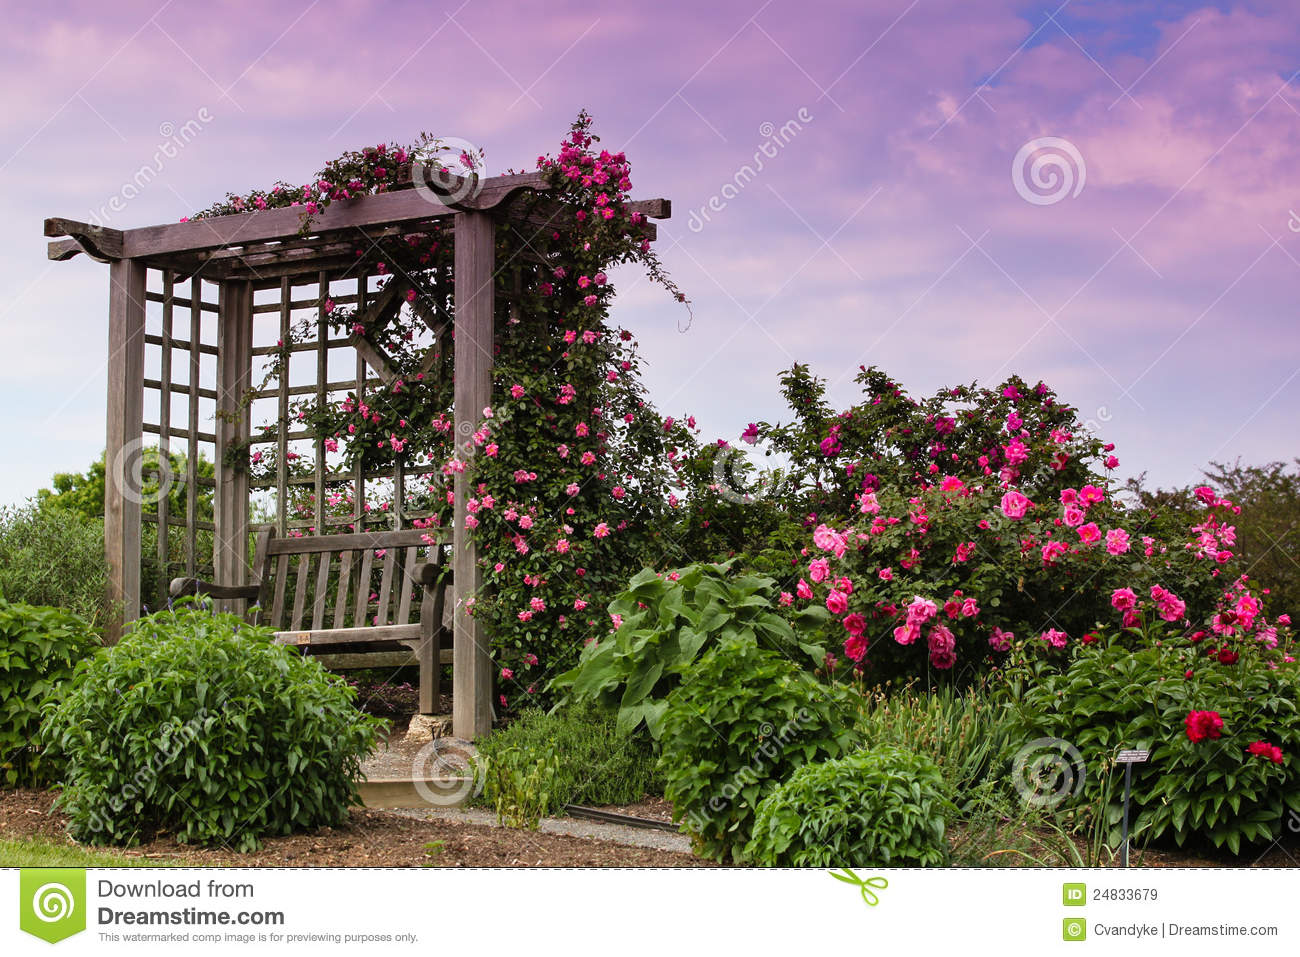 Trellis Blooming Pink Roses Garden Landscape Royalty Free ...